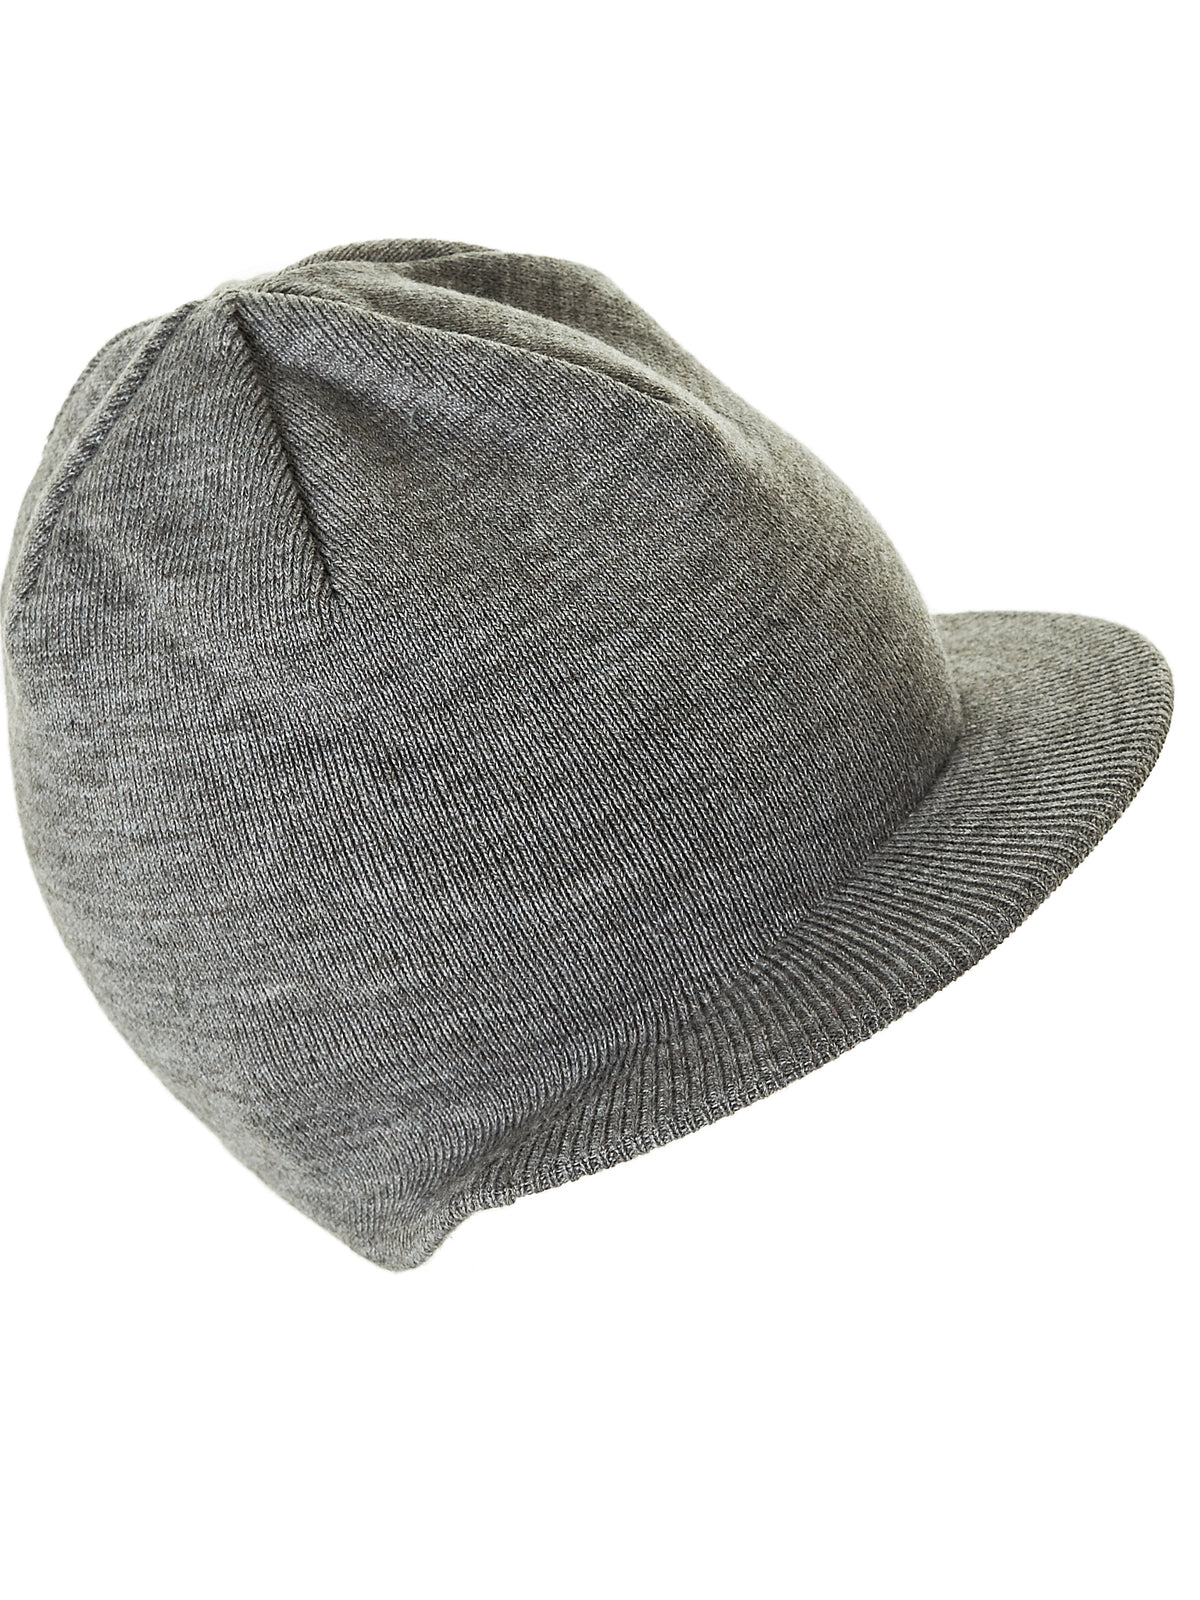 Knit Cap (UCV4H07-TOP-GRAY)